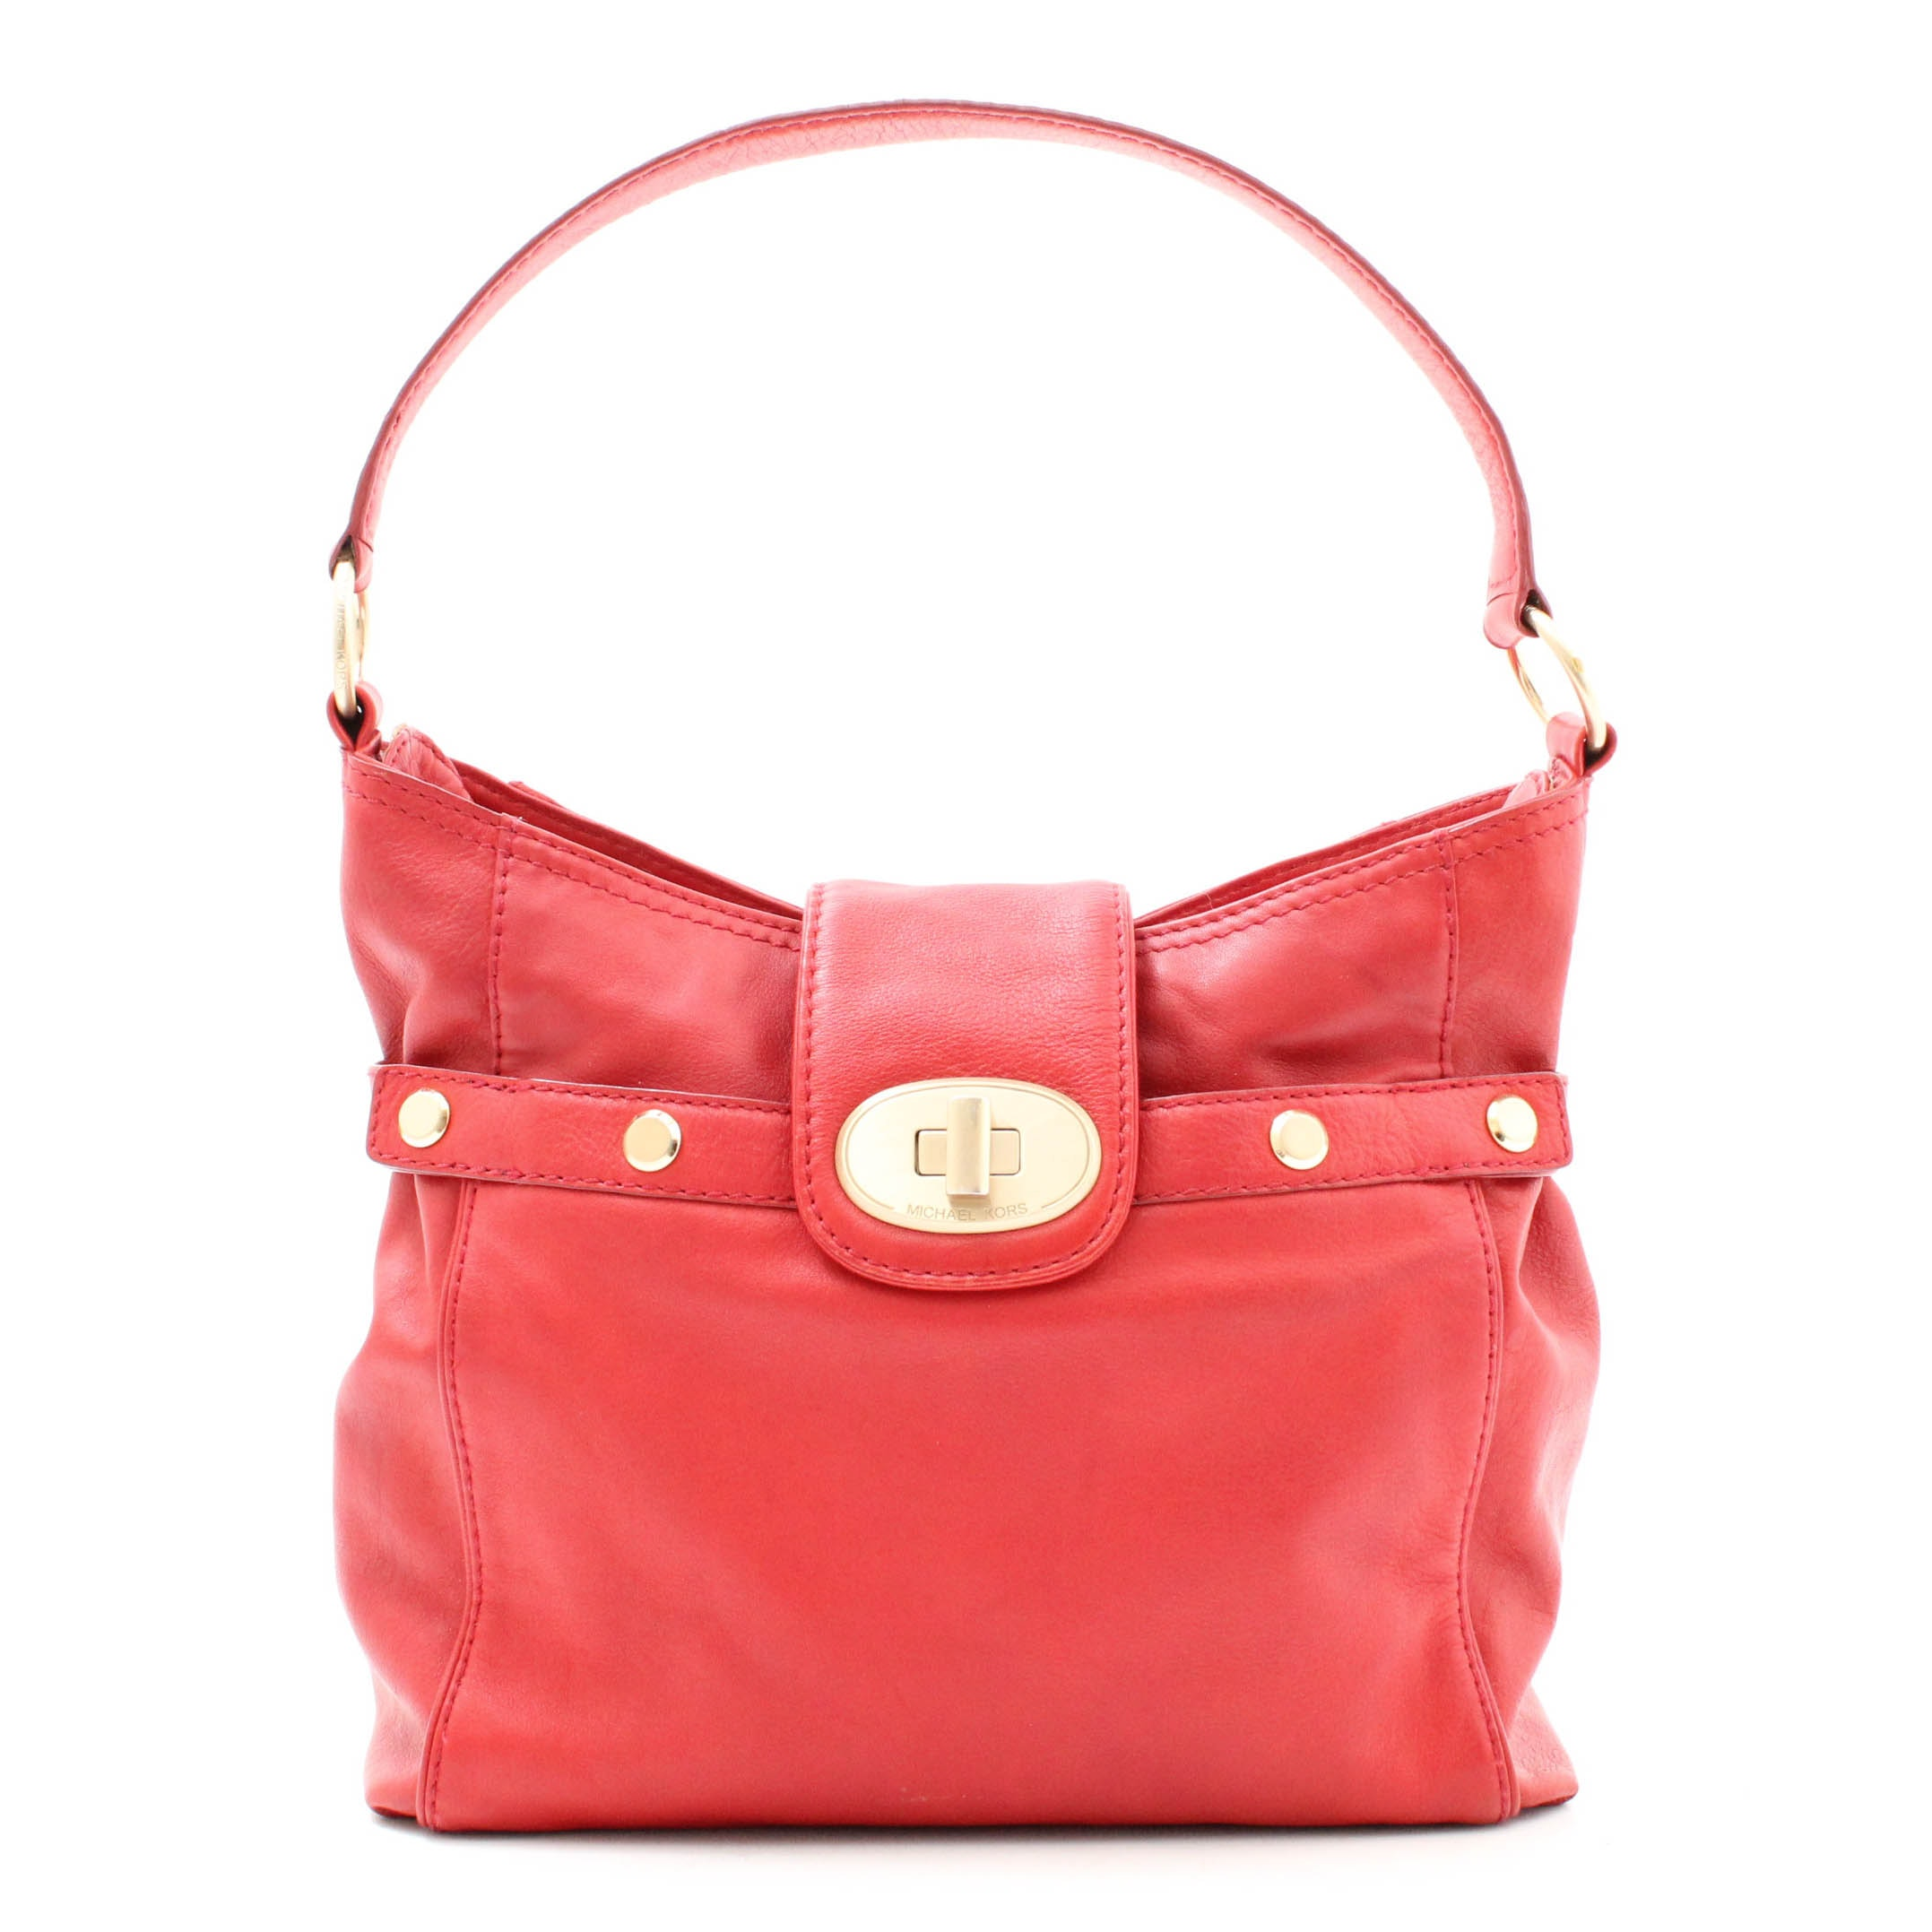 MICHAEL by Michael Kors Red Leather Hobo